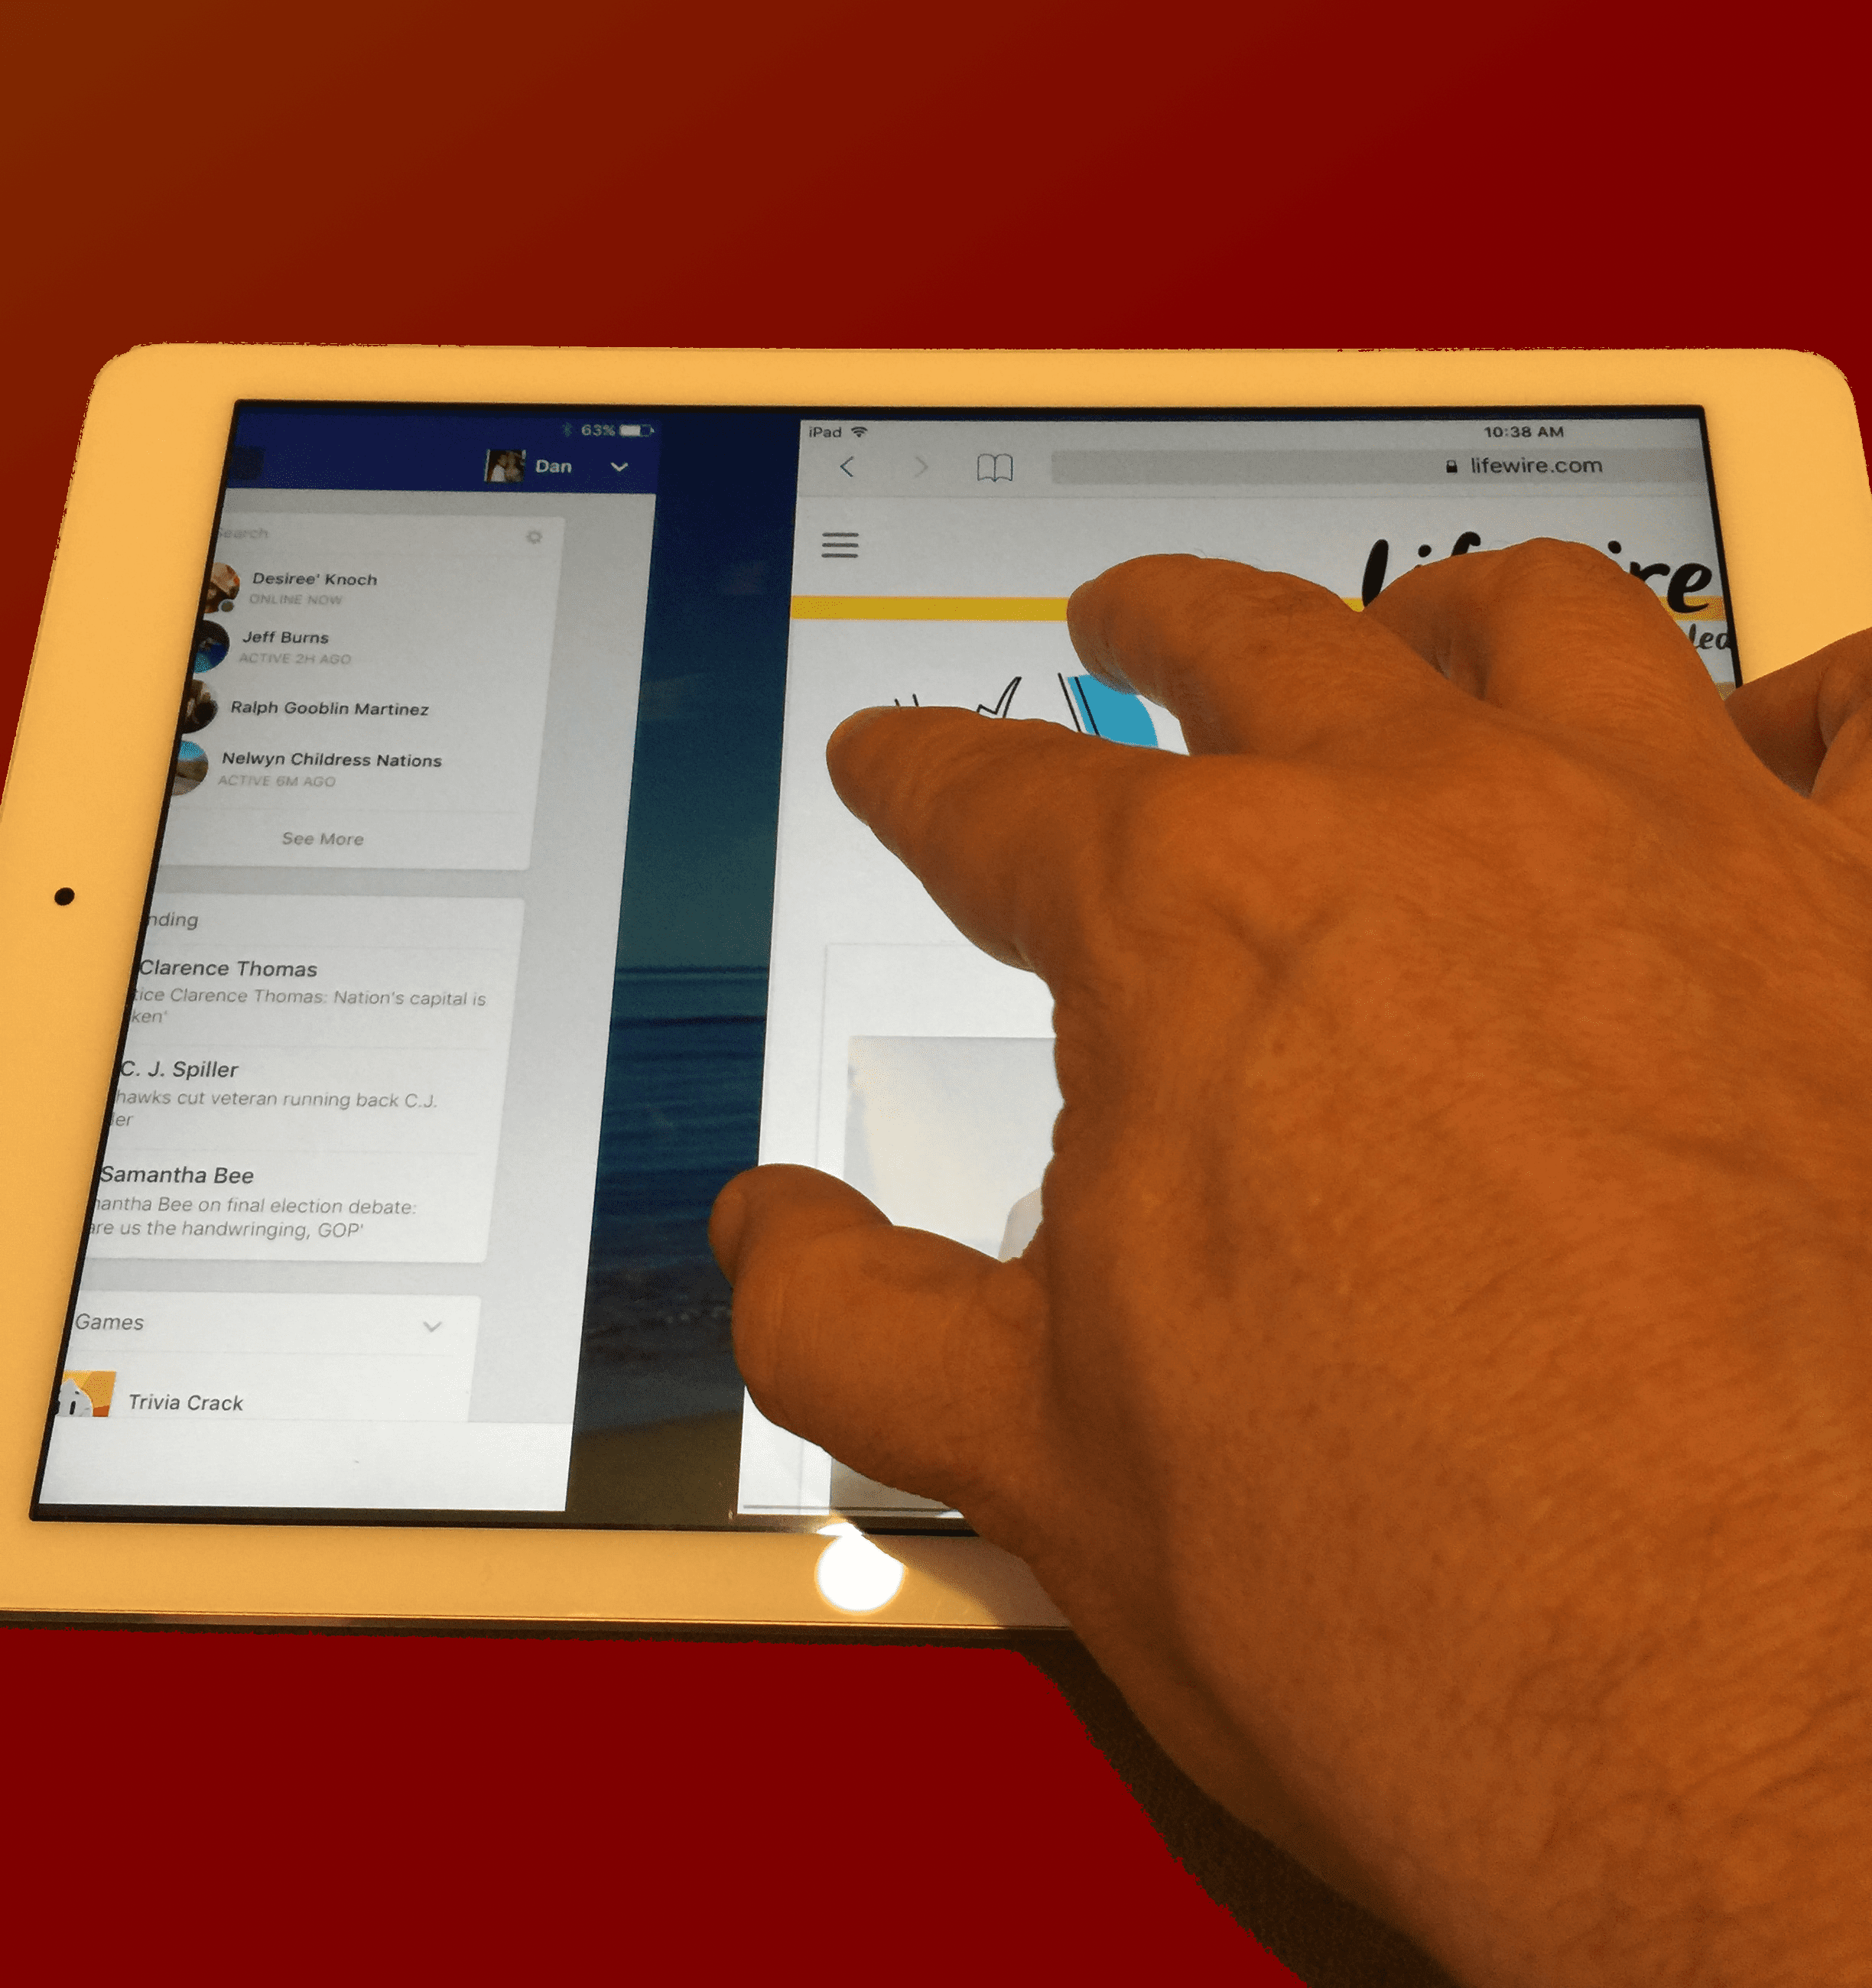 how to use multitasking gestures on the ipad